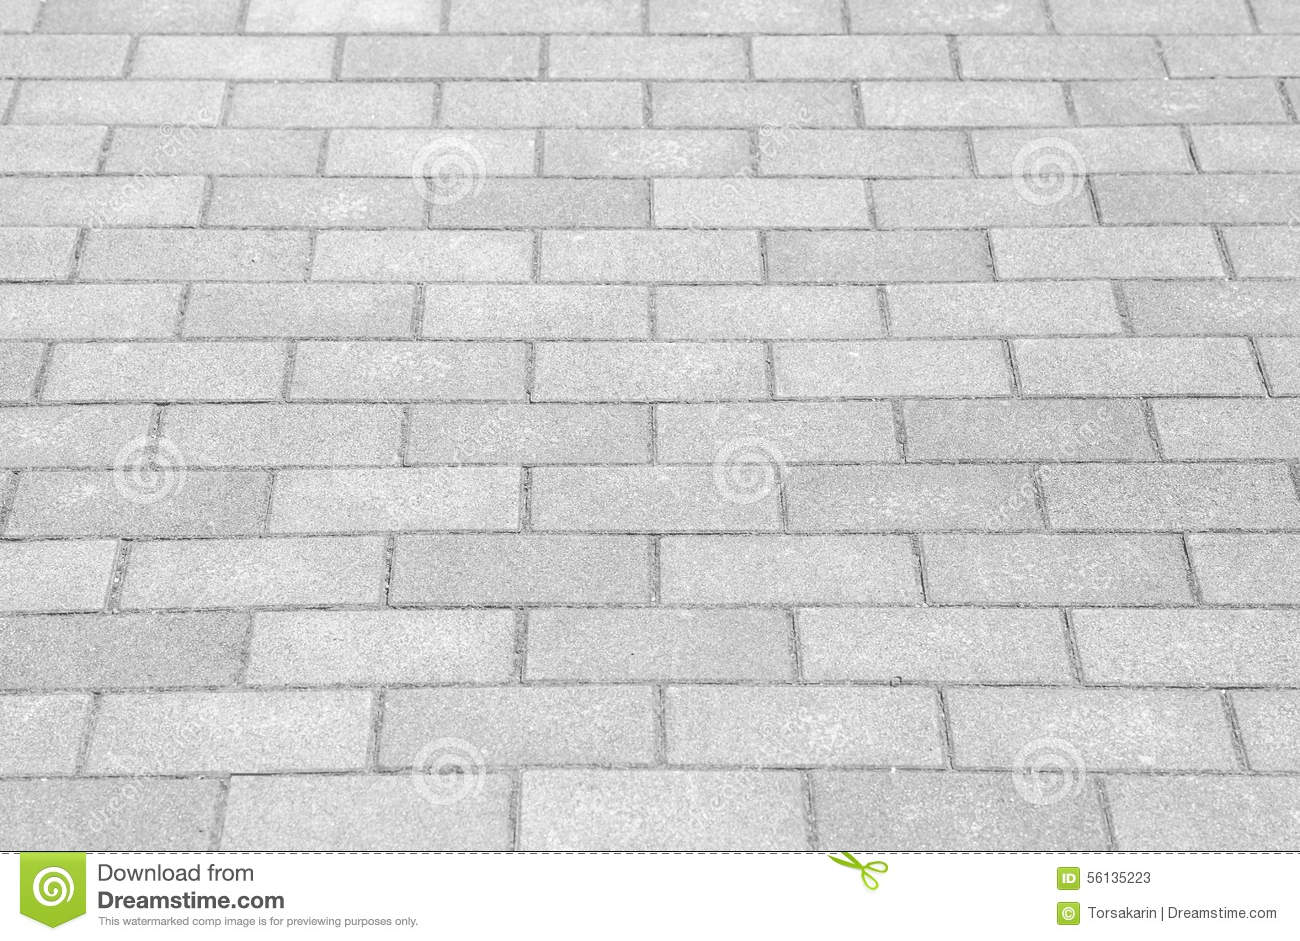 Concrete block floor stock image image of dirty decor for Concrete block floor